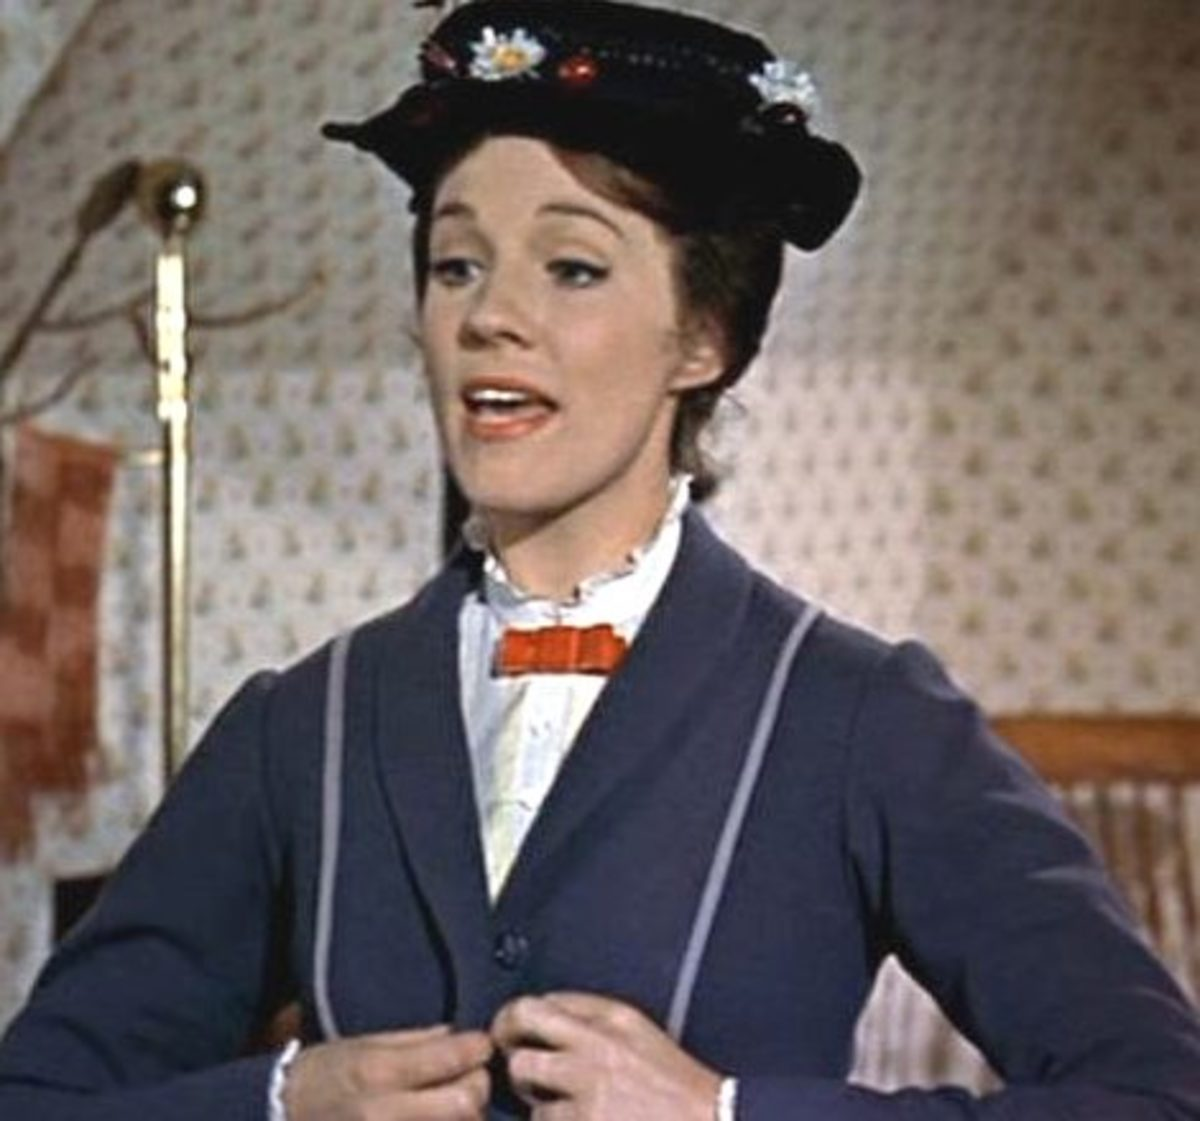 What song(s) do you remember from the Mary Poppins movie?